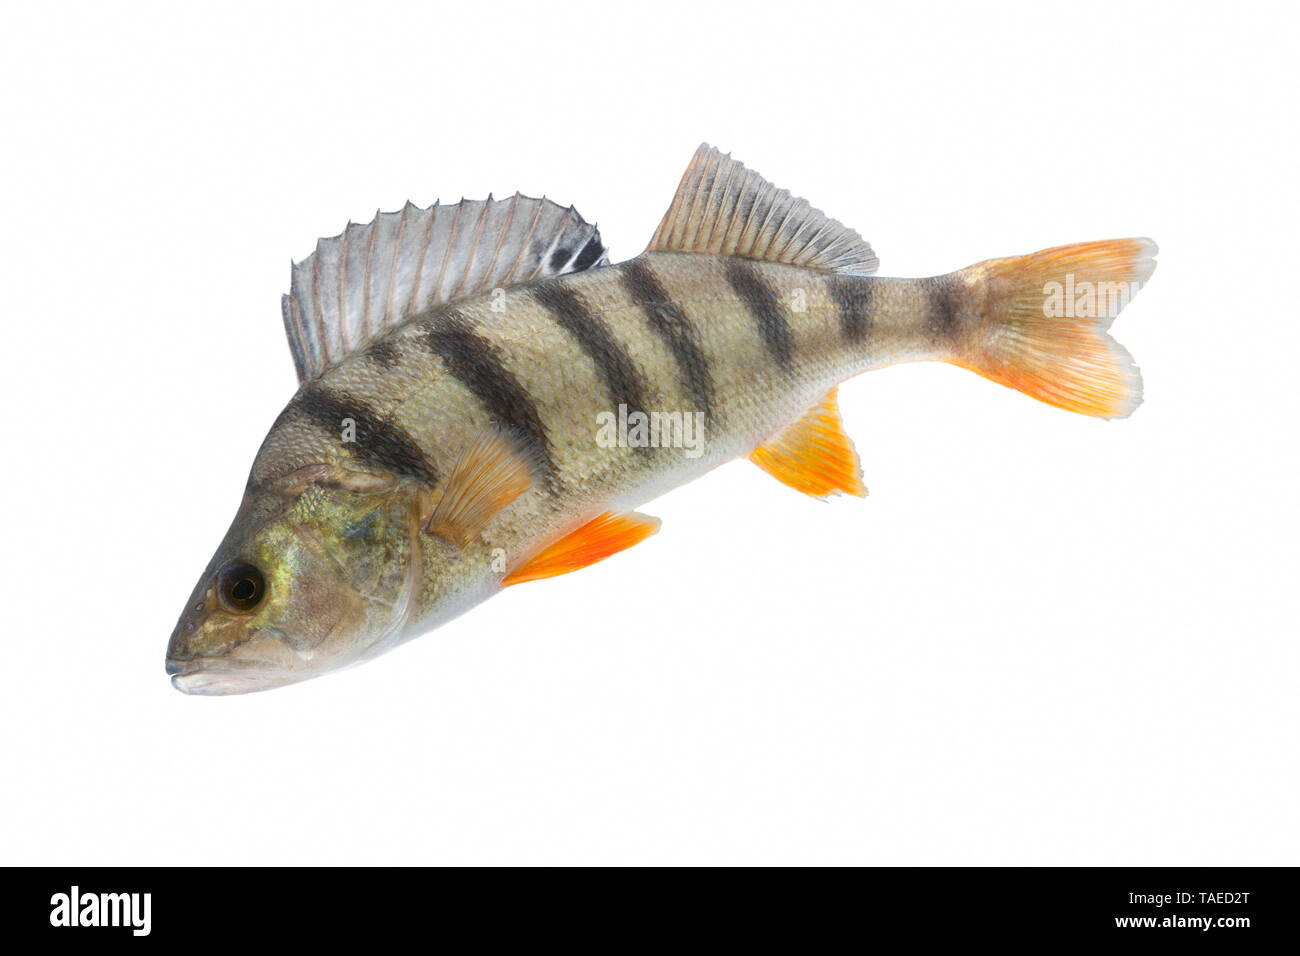 European perch (Perca fluviatilis) on white background, Sewen Lake, Doller Valley, Alsace, France - Stock Image